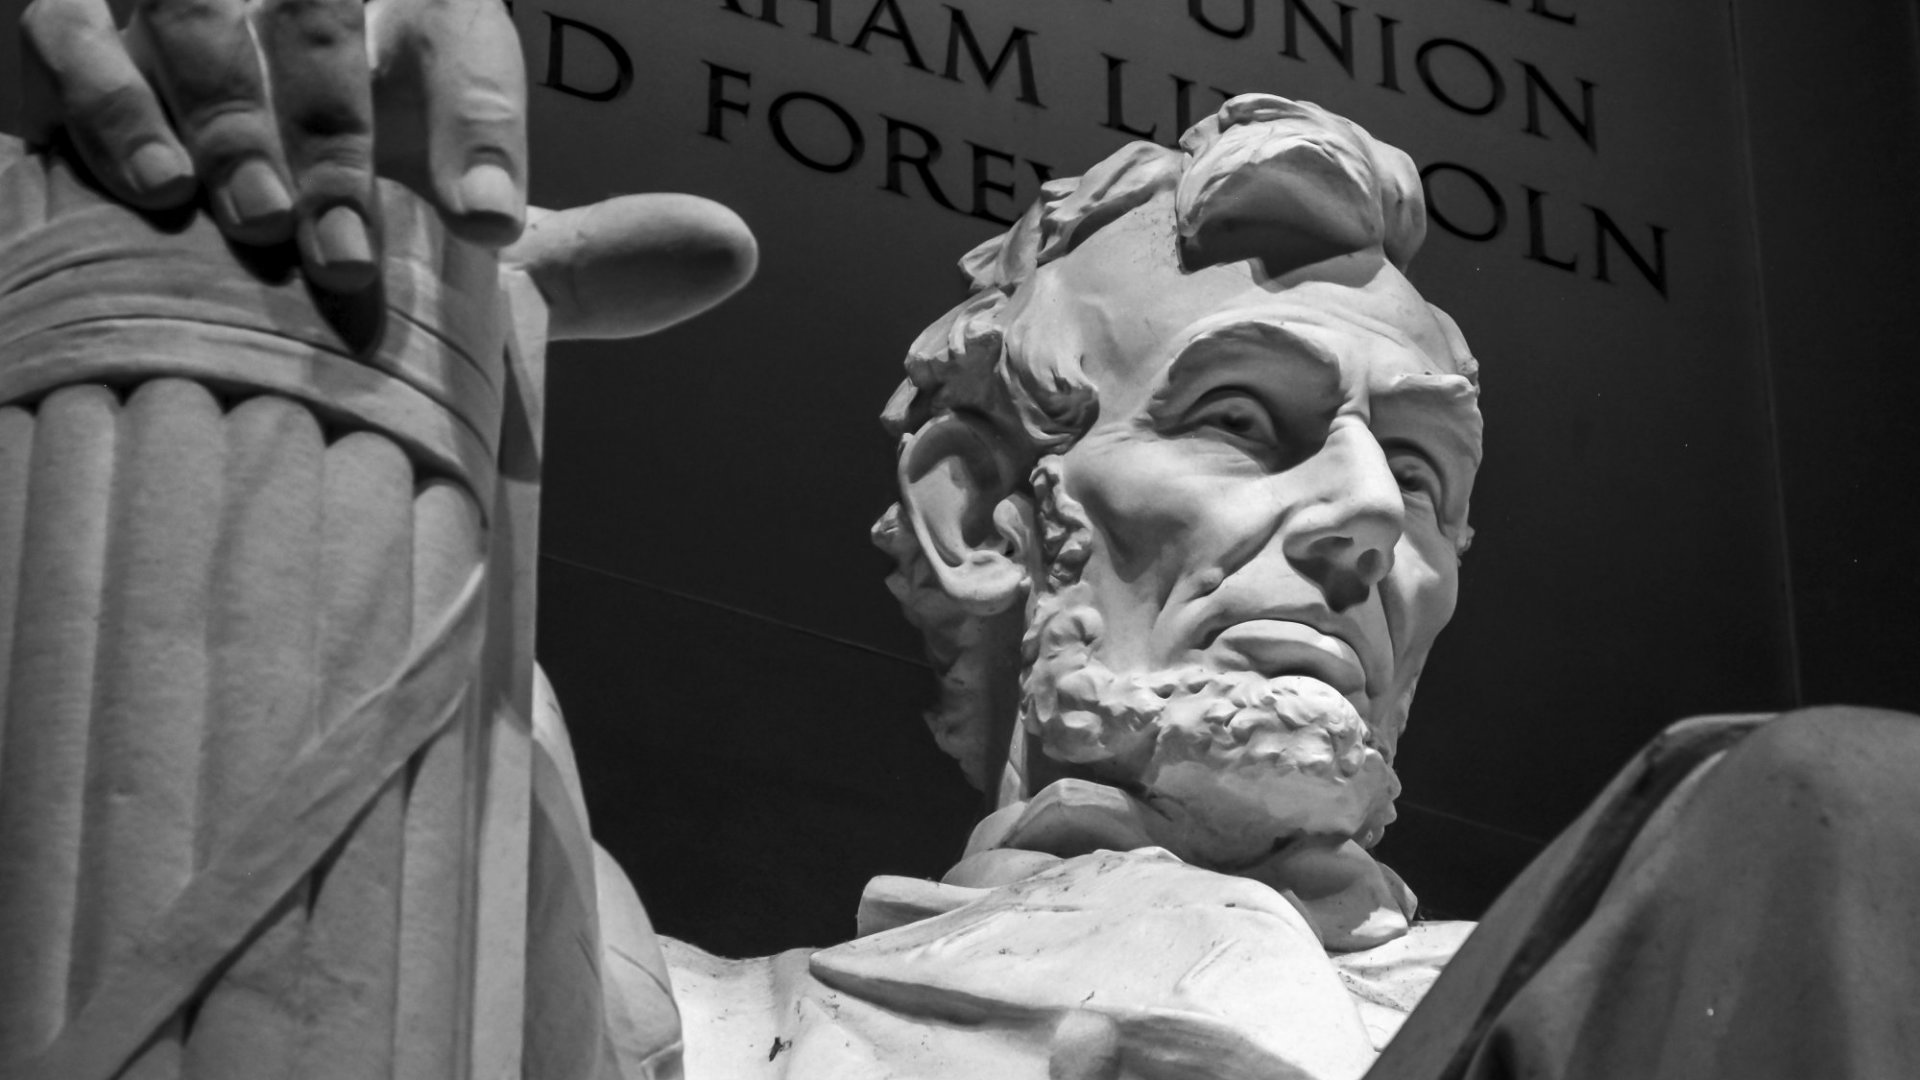 President Lincoln, with the short yet powerful Gettysburg Address in the background.